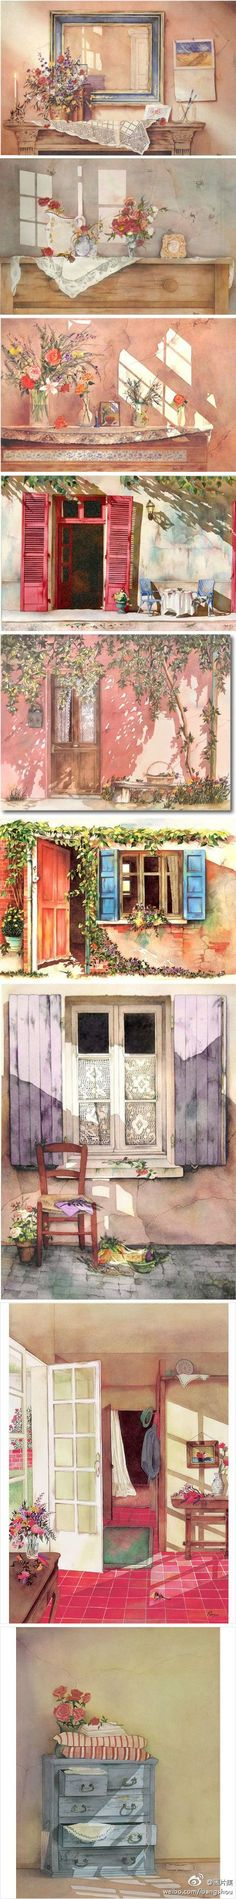 Shows beautifully the delicate mood of watercolor love it...........